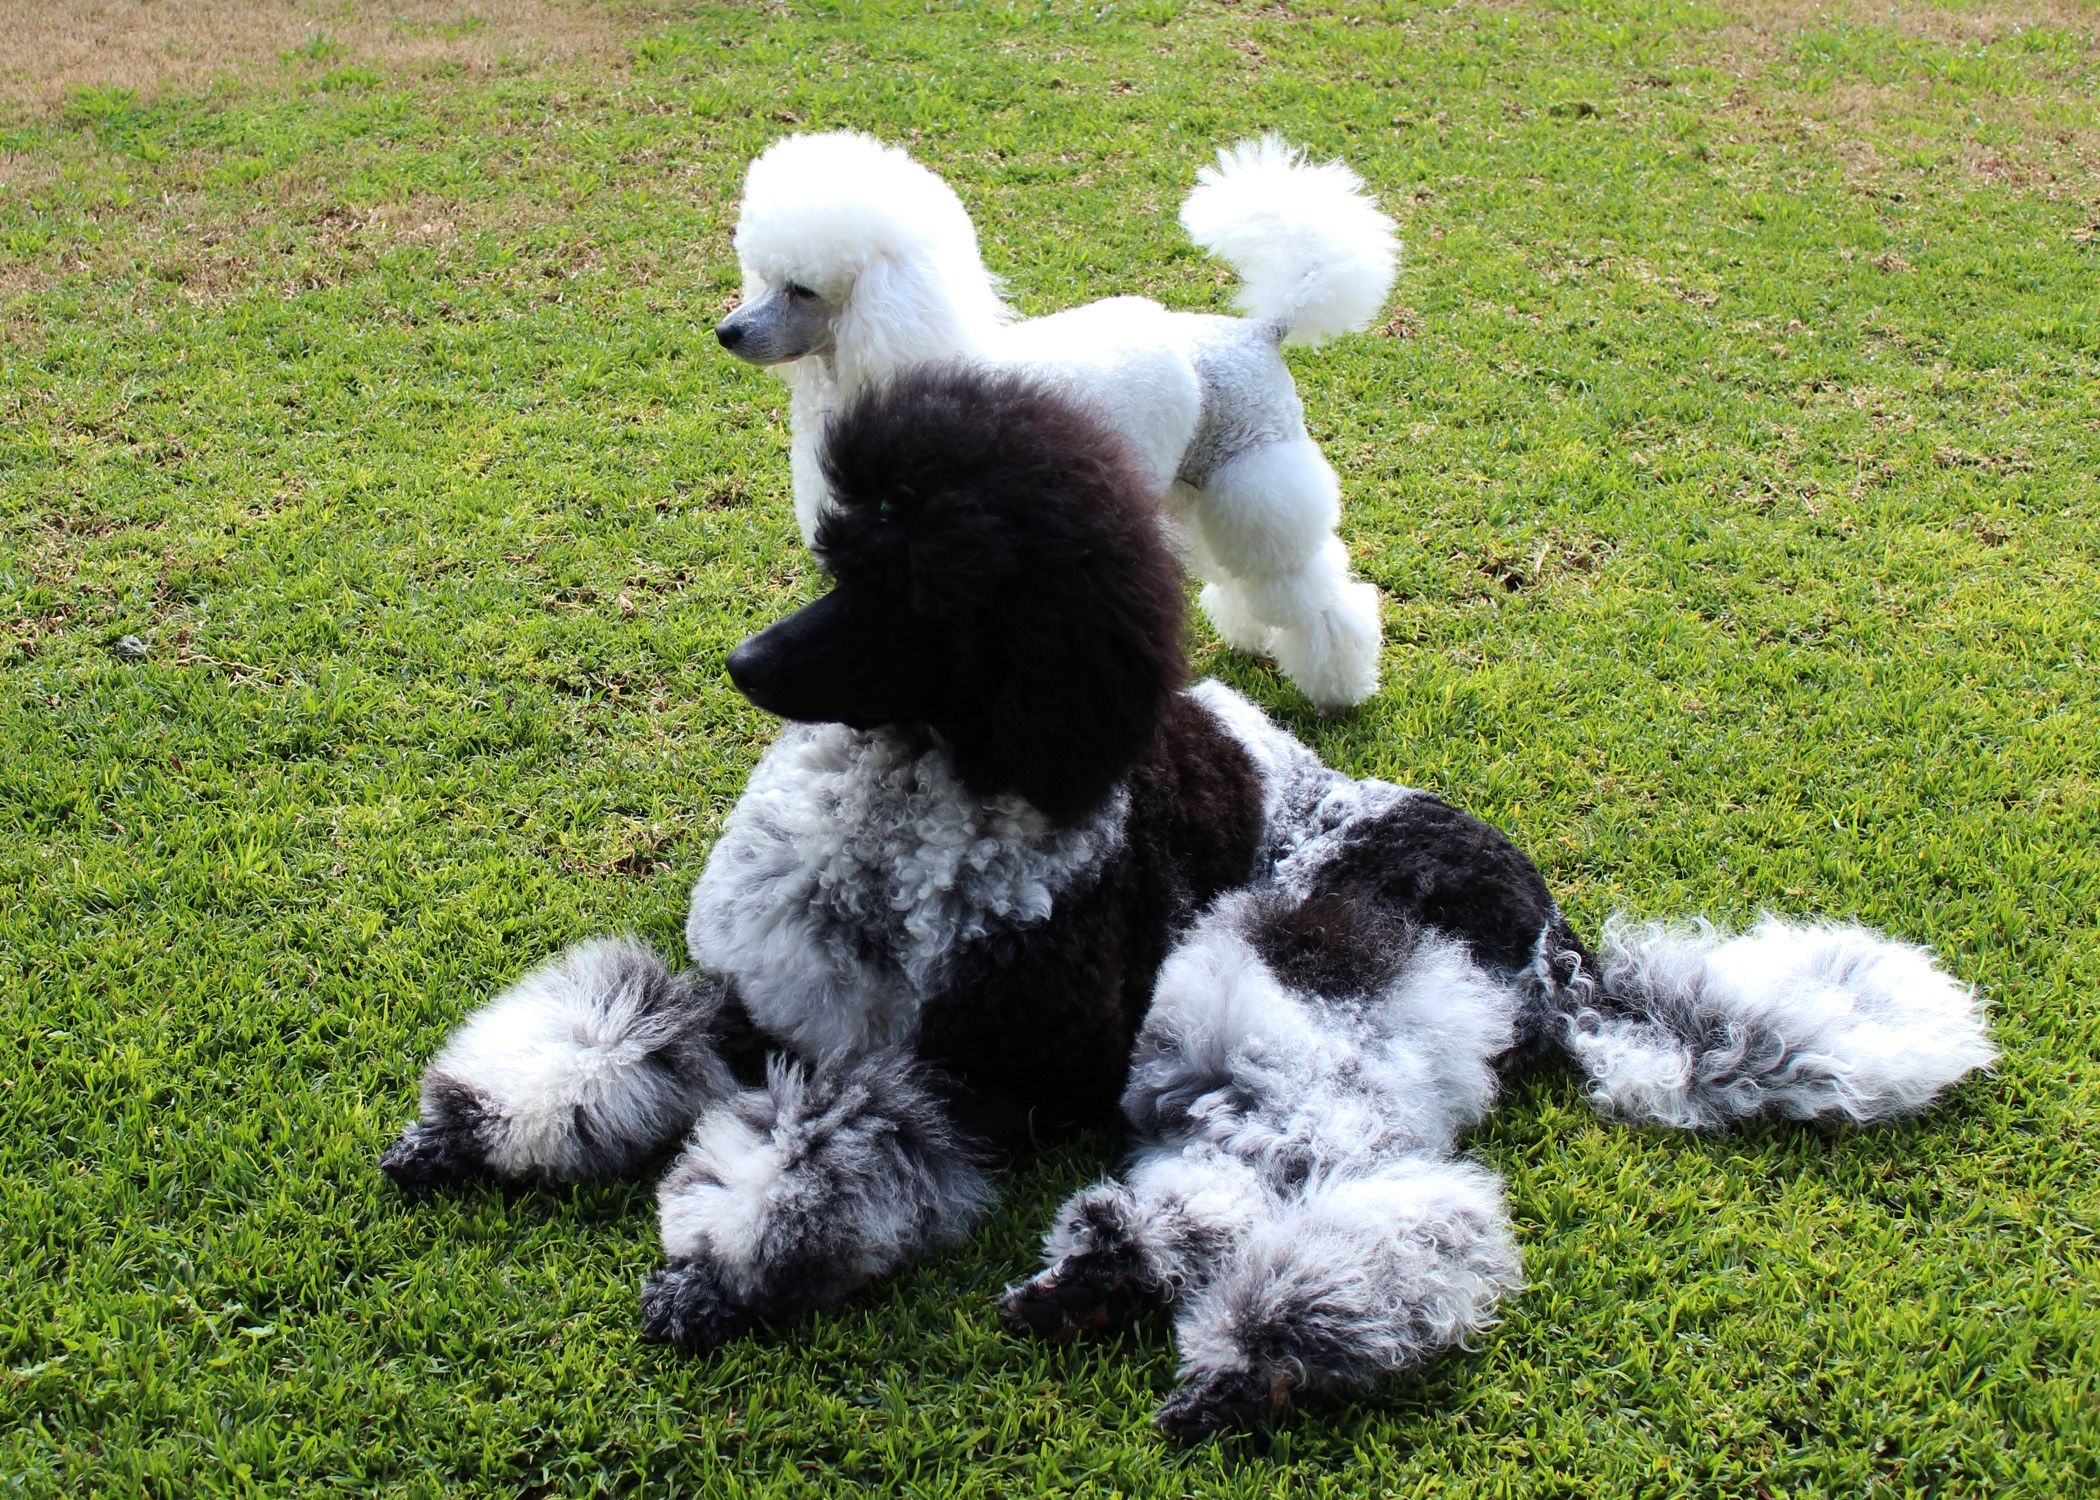 Standard Parti Poodle Miniature White Poodle Dolce Gucci My